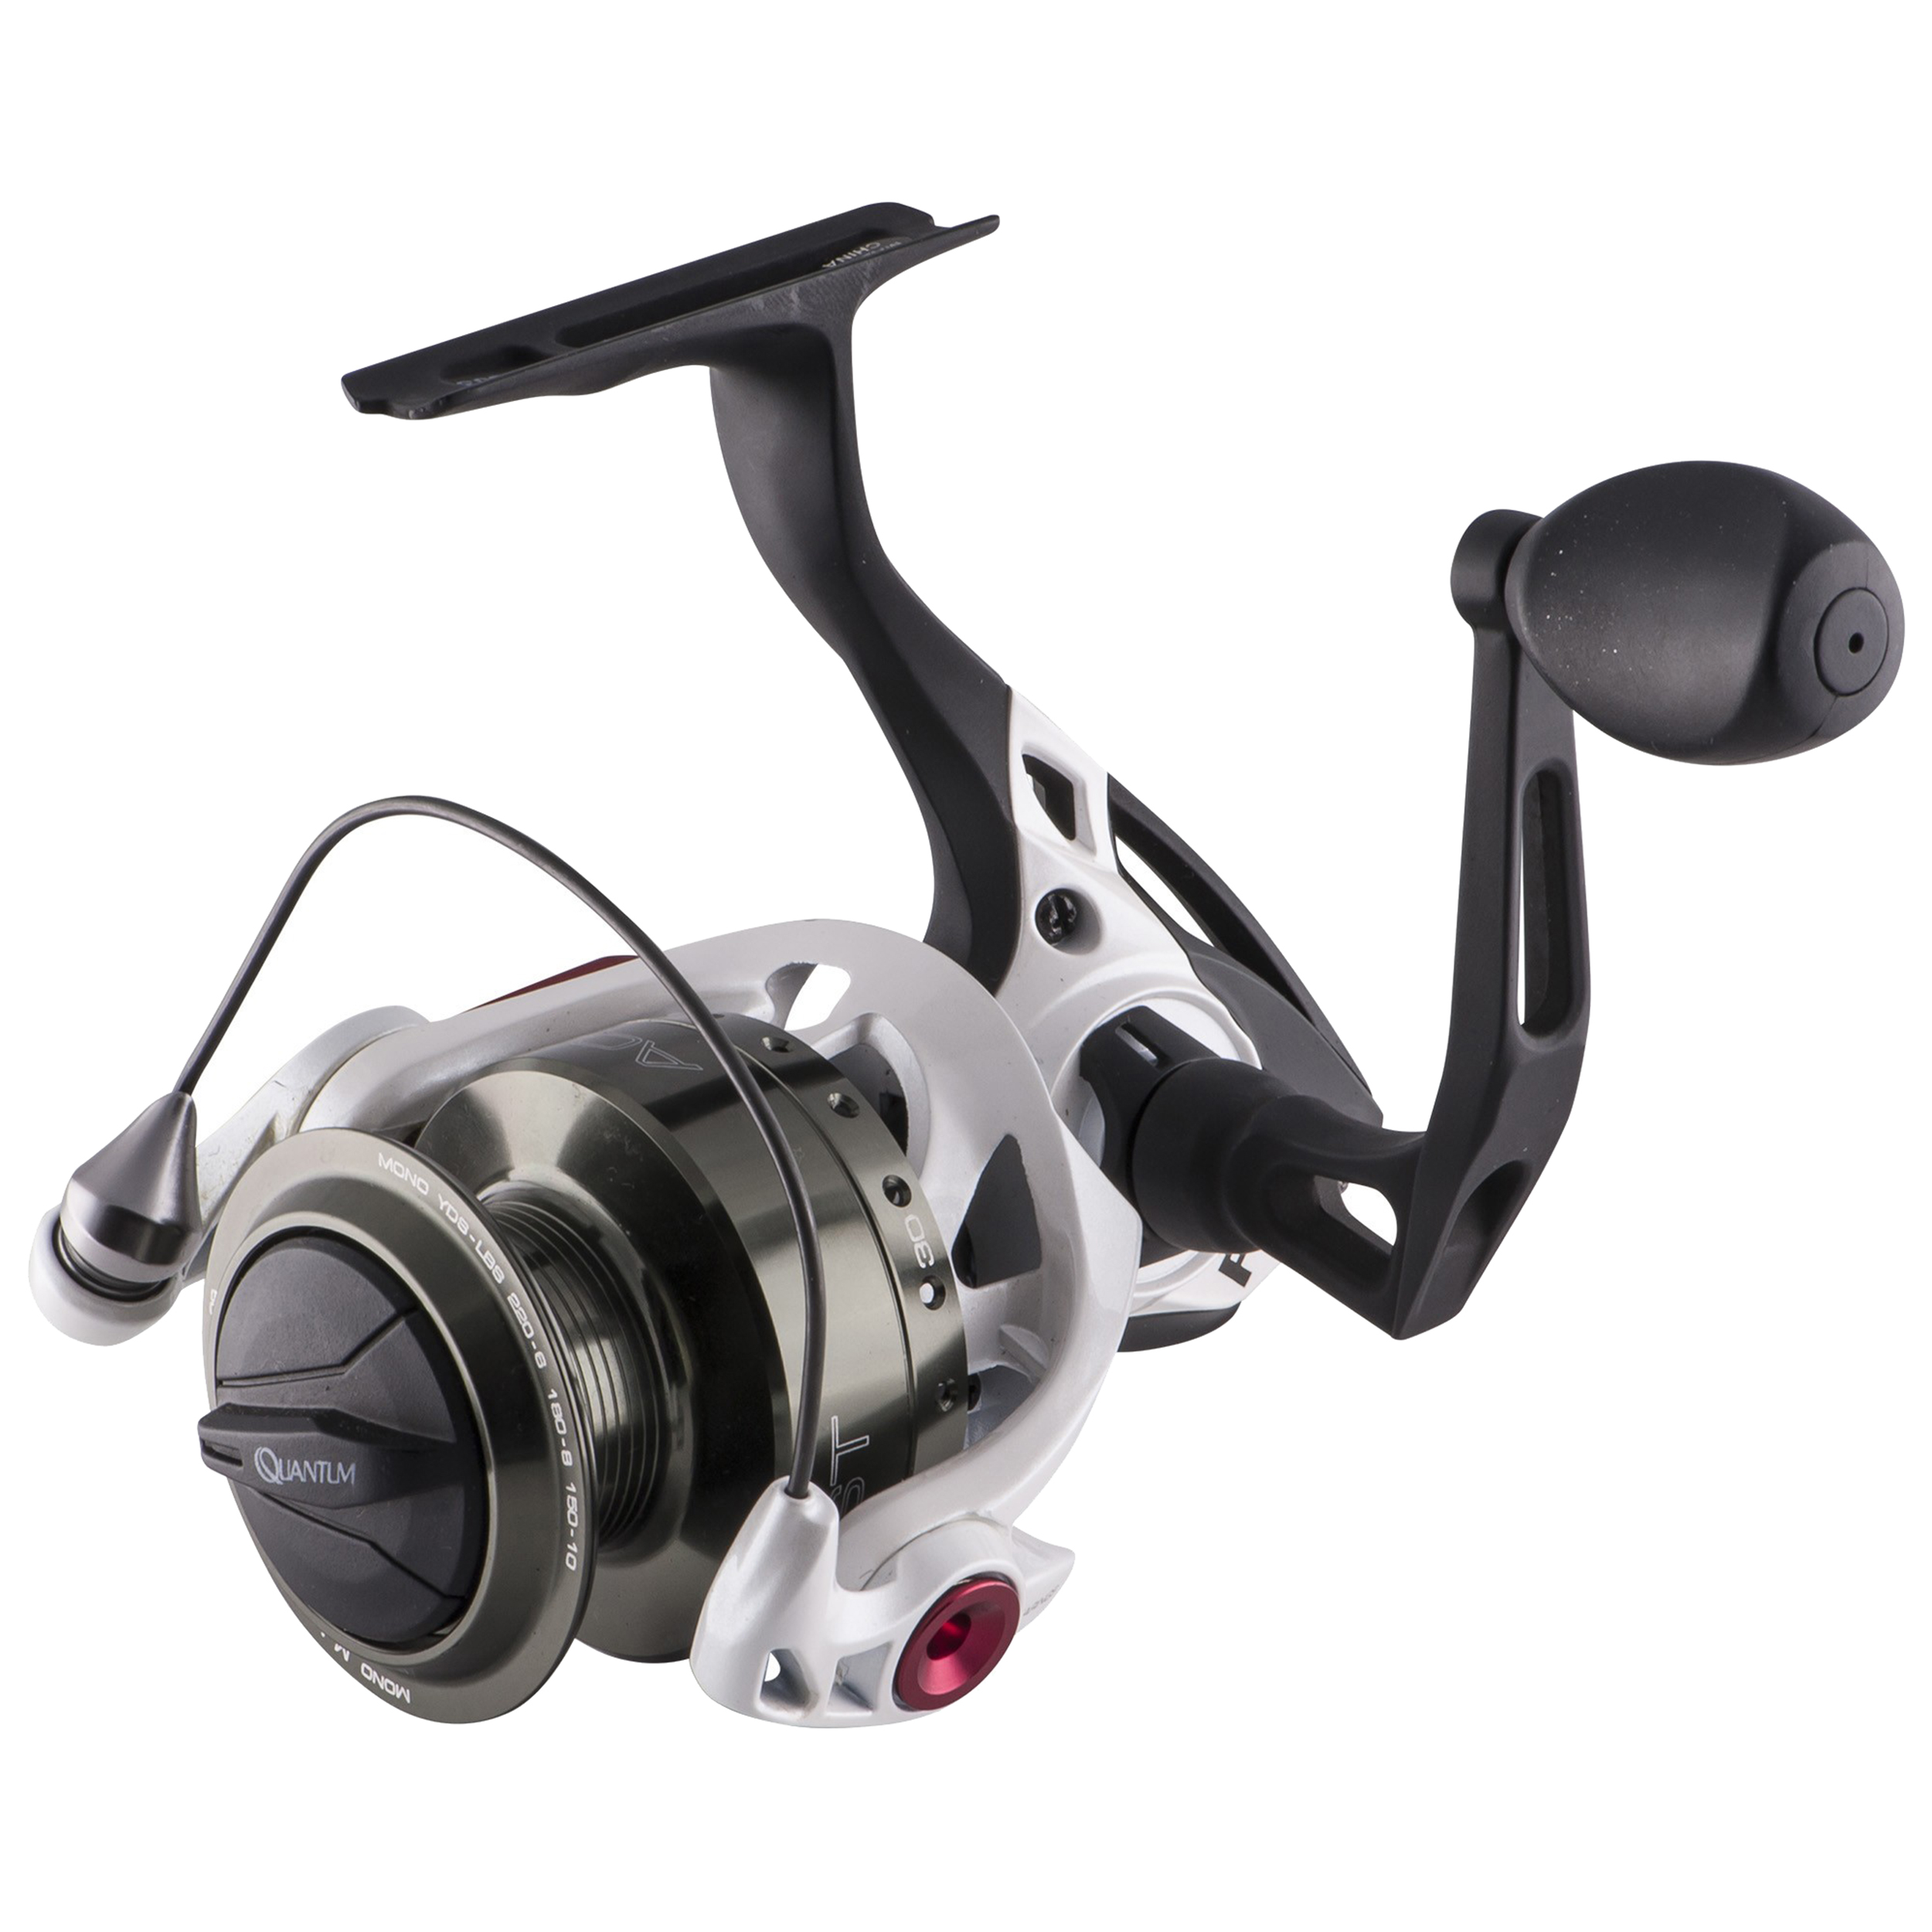 "Zebco / Quantum Accurist PT Spinning Reel Size 30, 5.2:1 Gear Ratio, 28"" Retrieve Rate, 18 lb Max Drag, Ambidextrous"